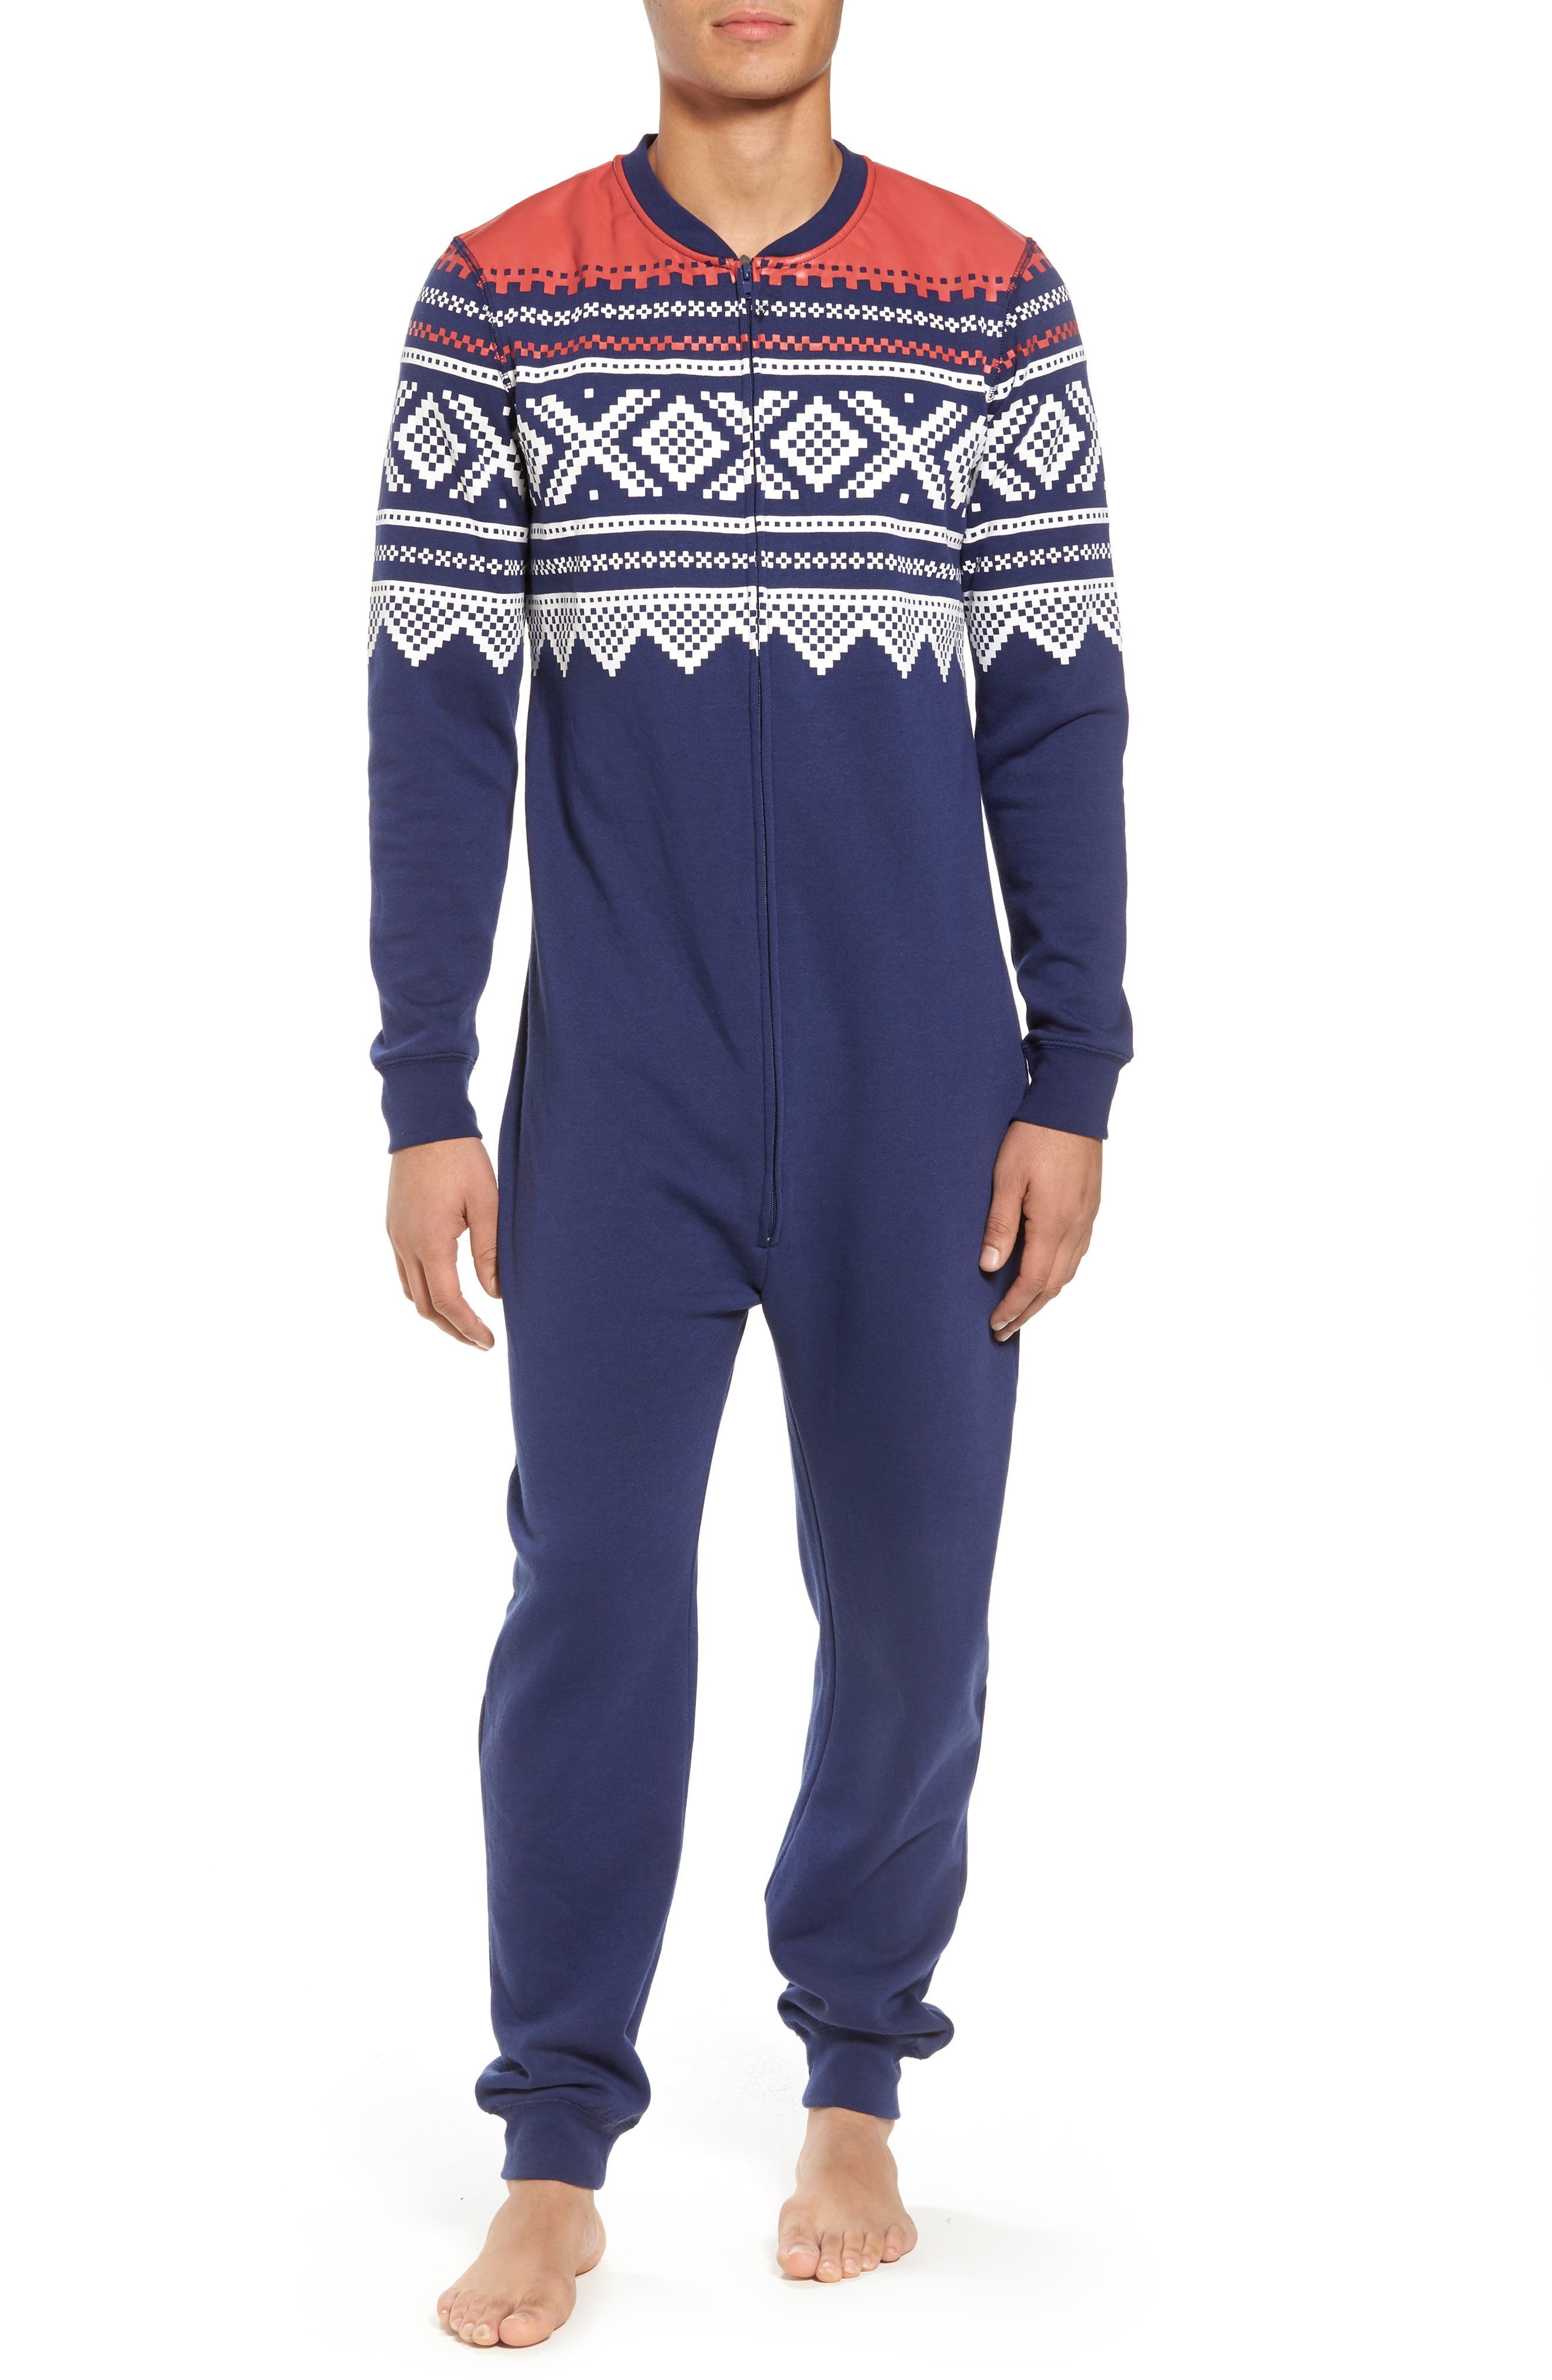 The Rail Fleece One-Piece Pajamas